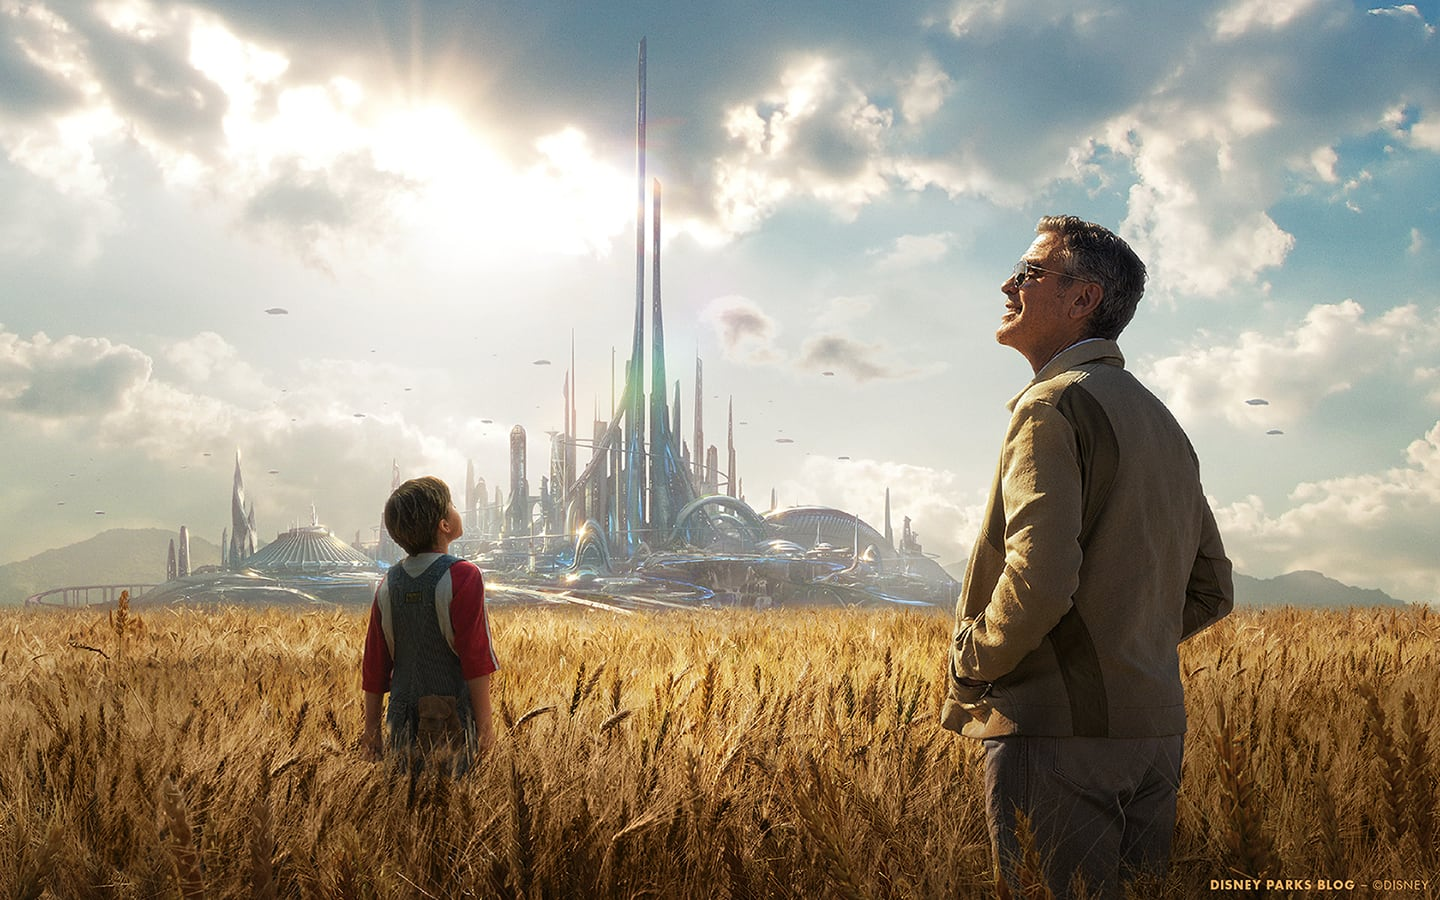 Download Our Tomorrowland Wallpaper to Celebrate Films Release